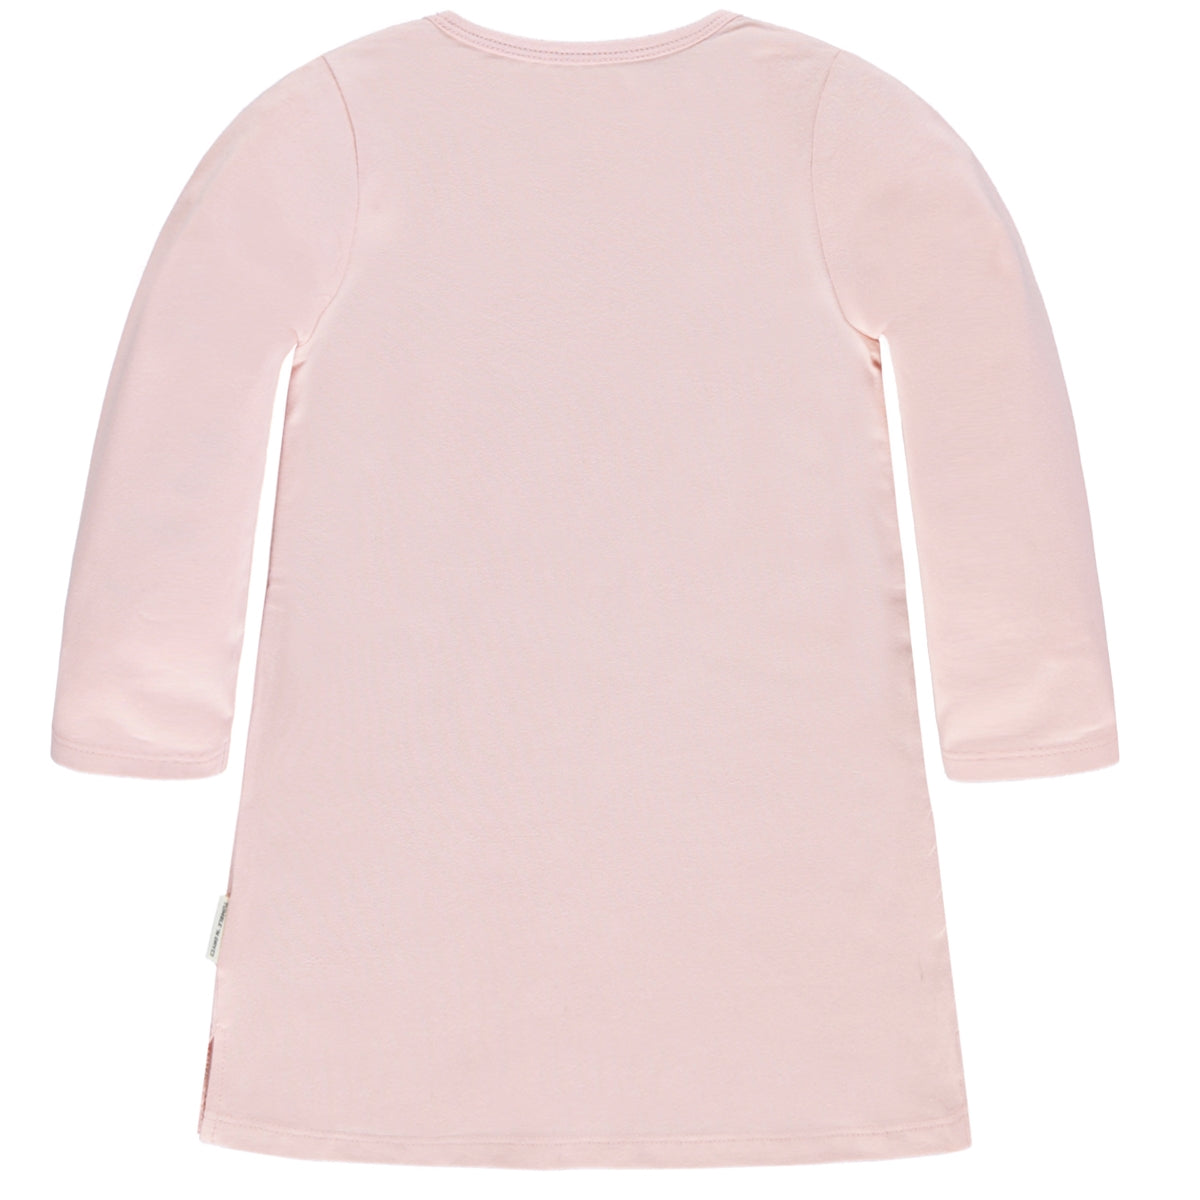 Garloes Girls Long sleeve - Petit Atelier Enfant